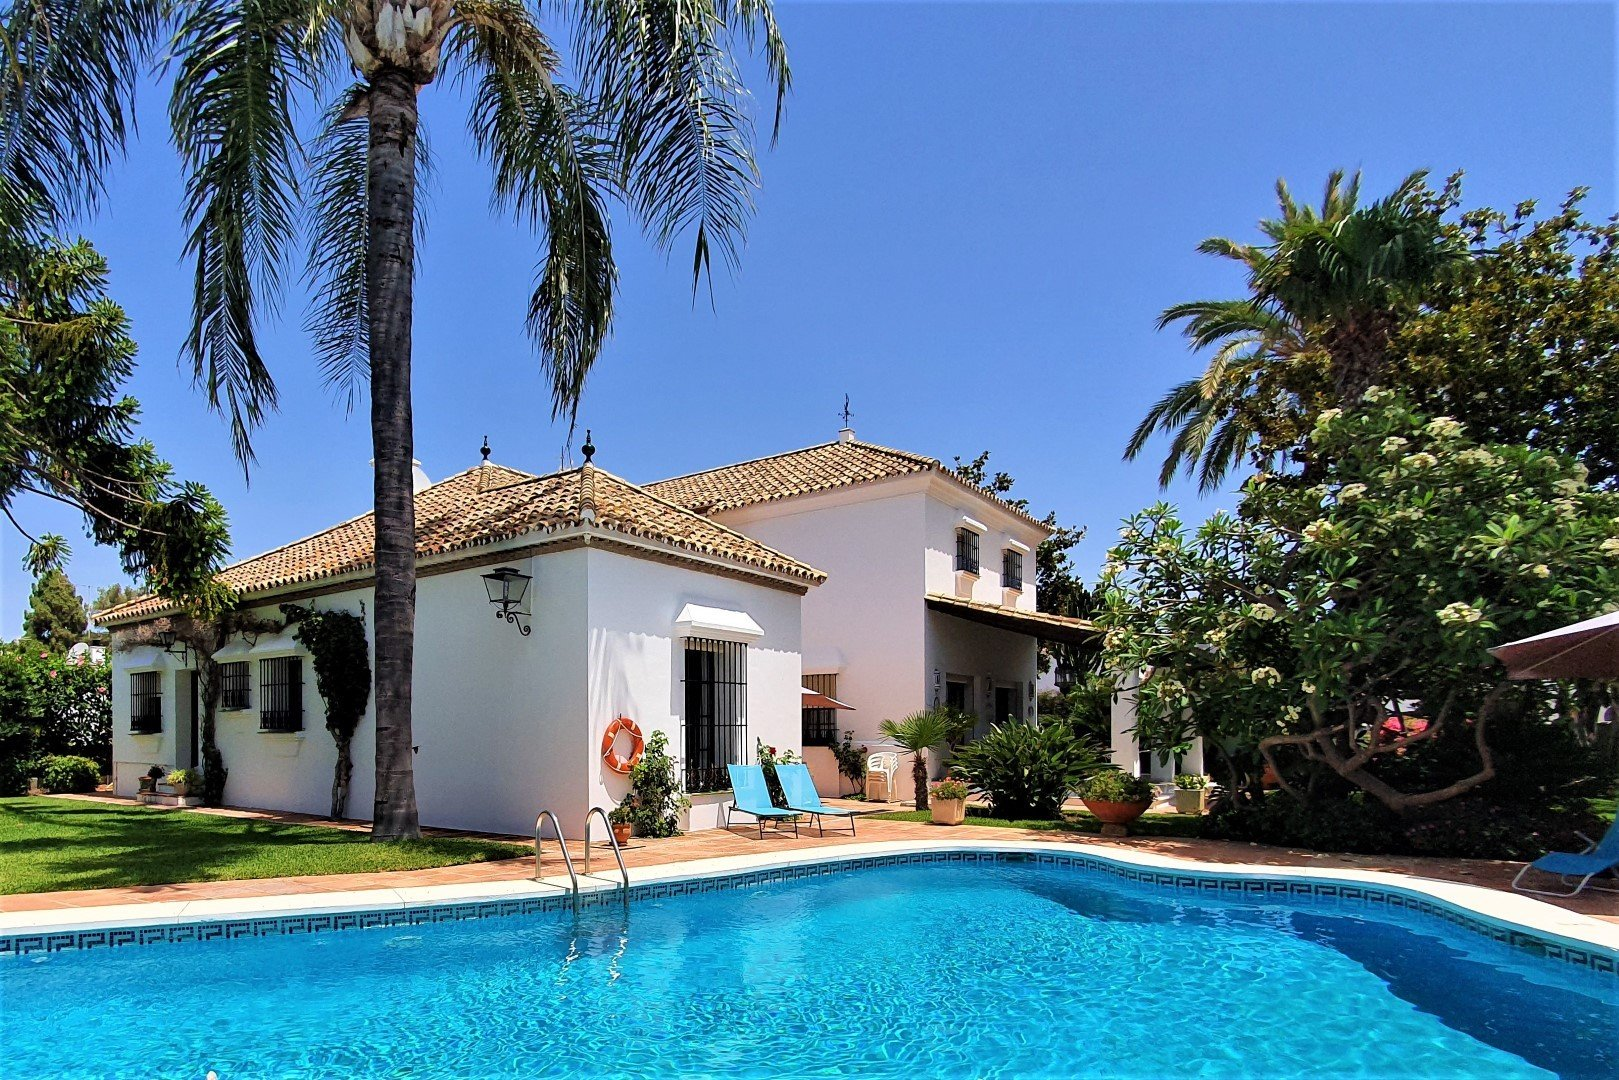 Villa for rent in San Pedro Alcantara, Cortijo Blanco